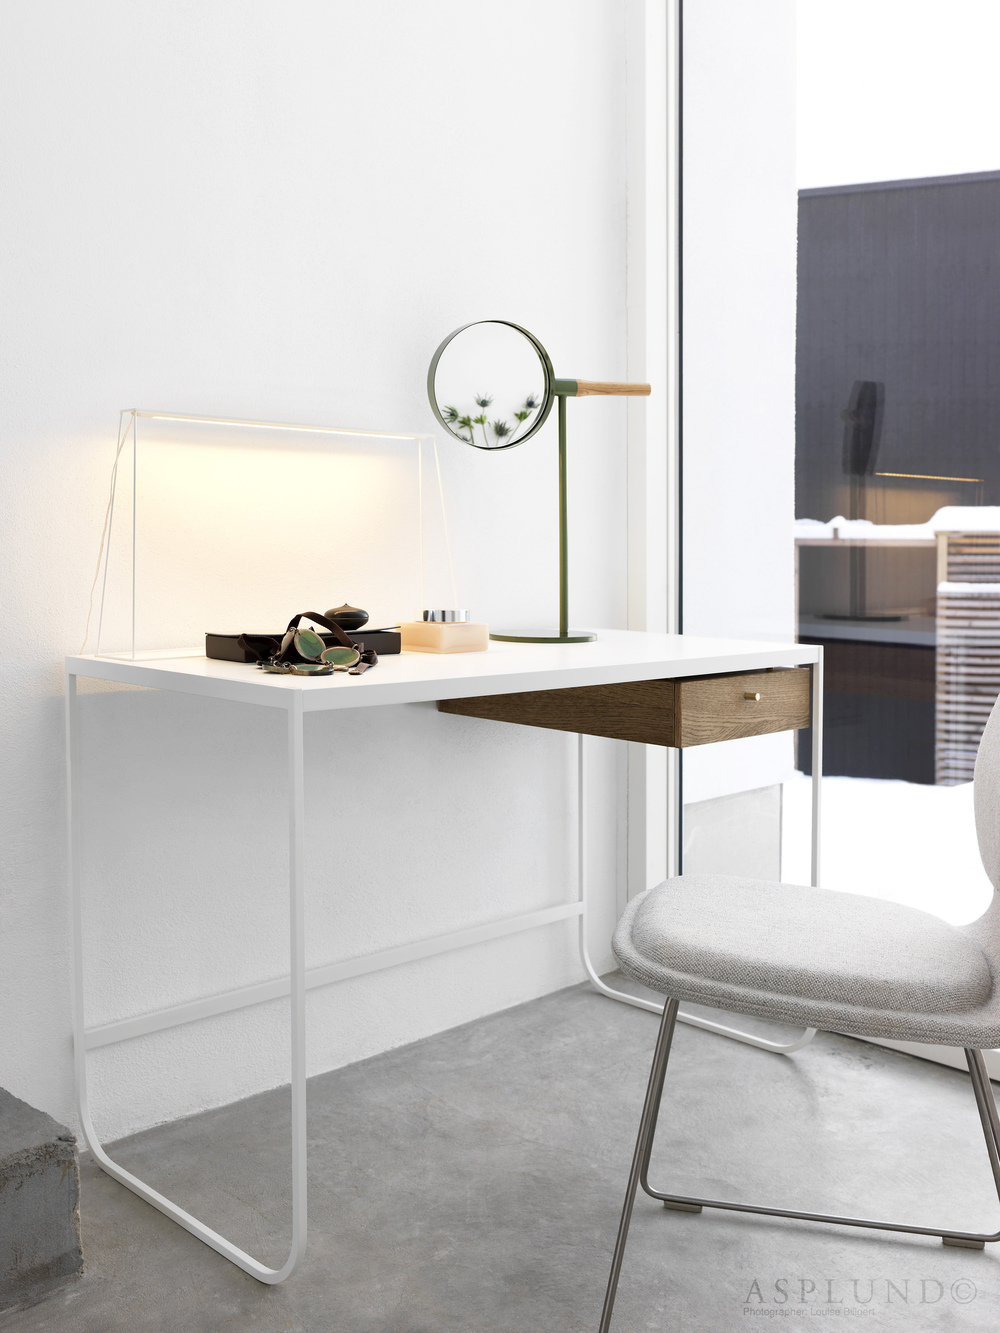 space-TATI-desk-MEMIRROR-table-ASPLUND_HIGH copy.jpg